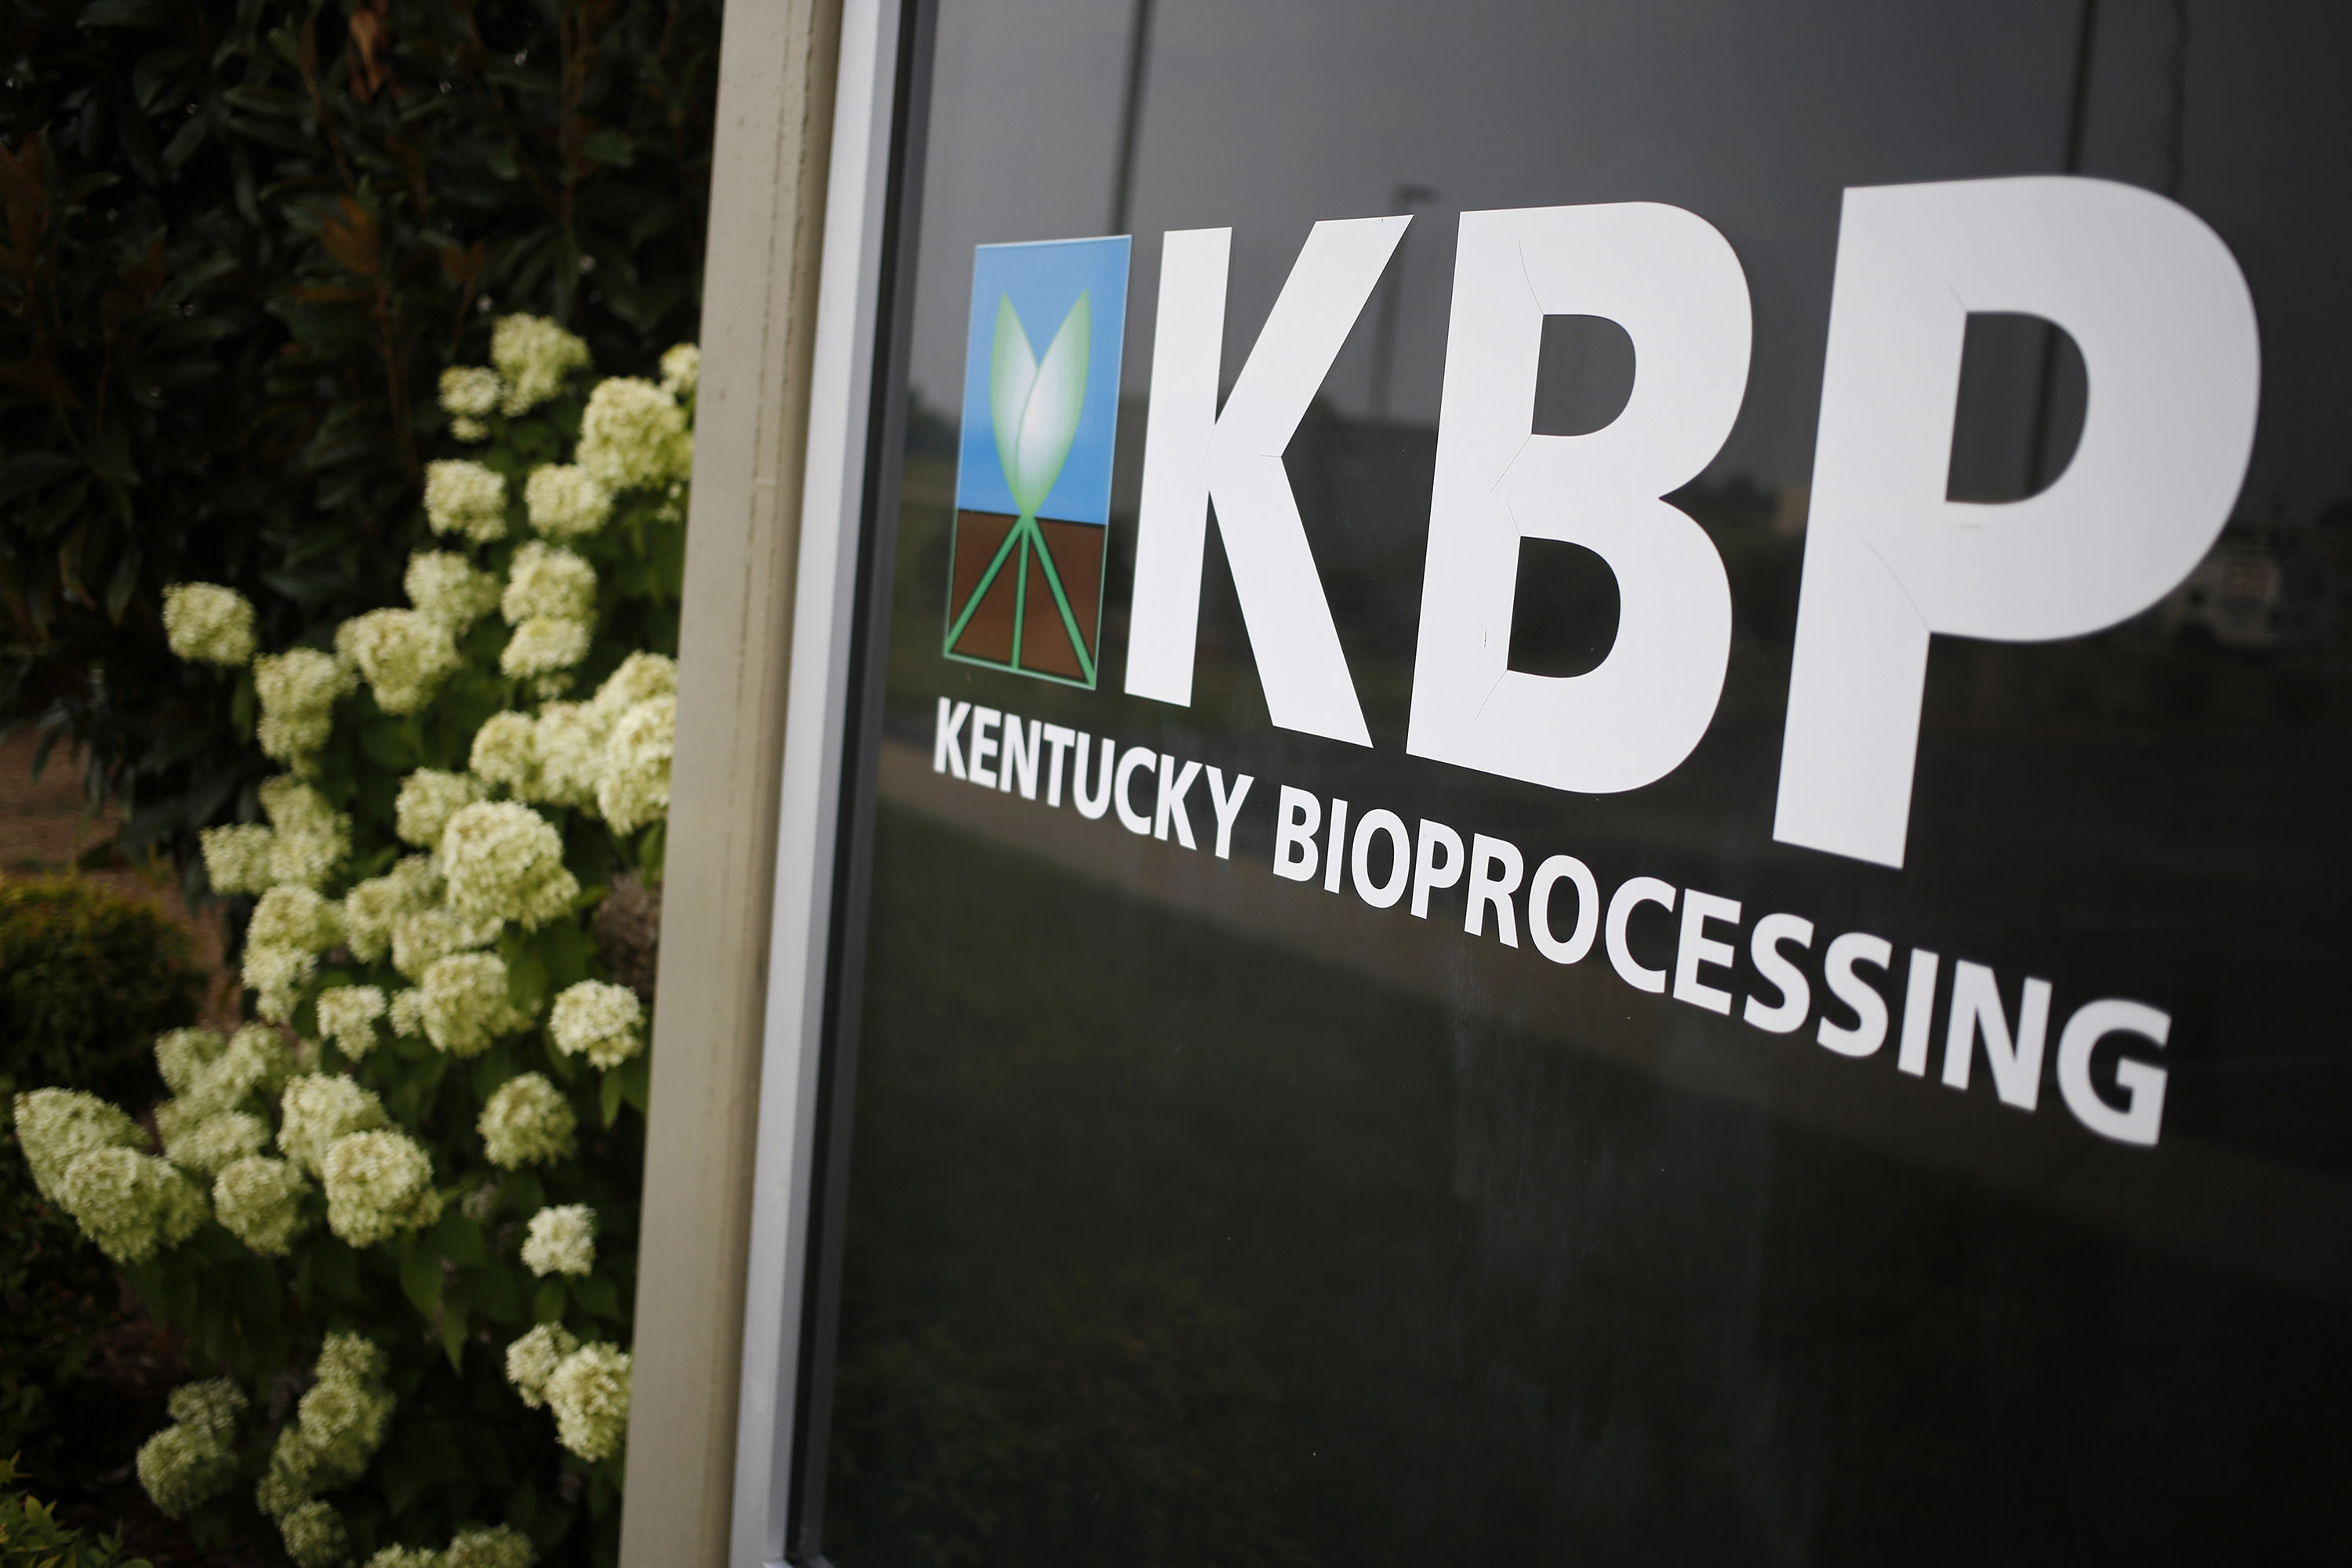 The logo for Kentucky BioProcessing LLC is displayed at the facility in Owensboro, Kentucky, in August 2014.